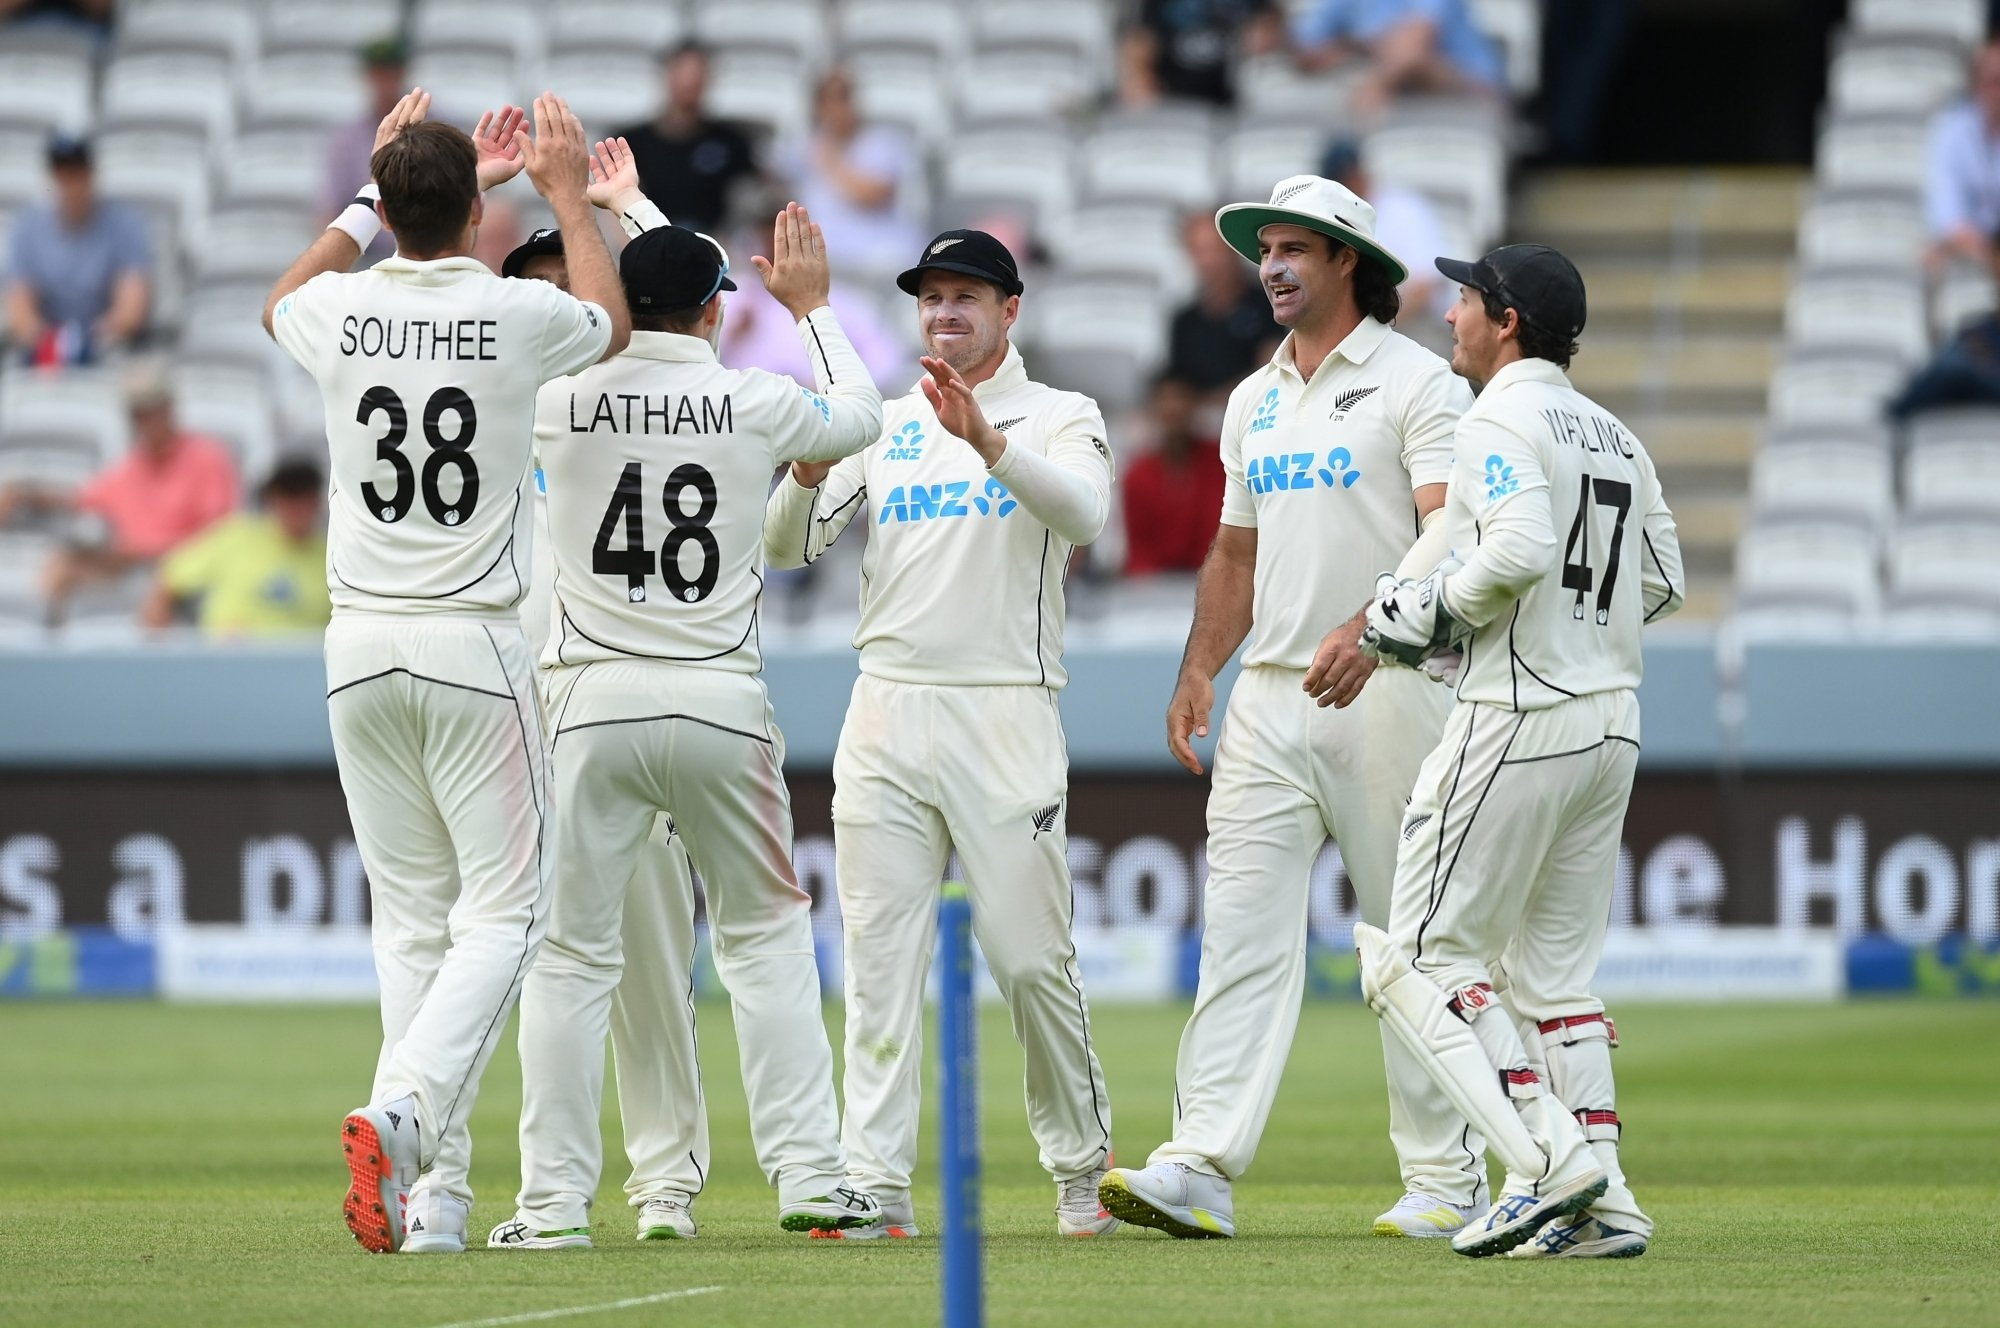 England vs New Zealand, 2nd Test Day 1 Live Streaming: When and where to watch